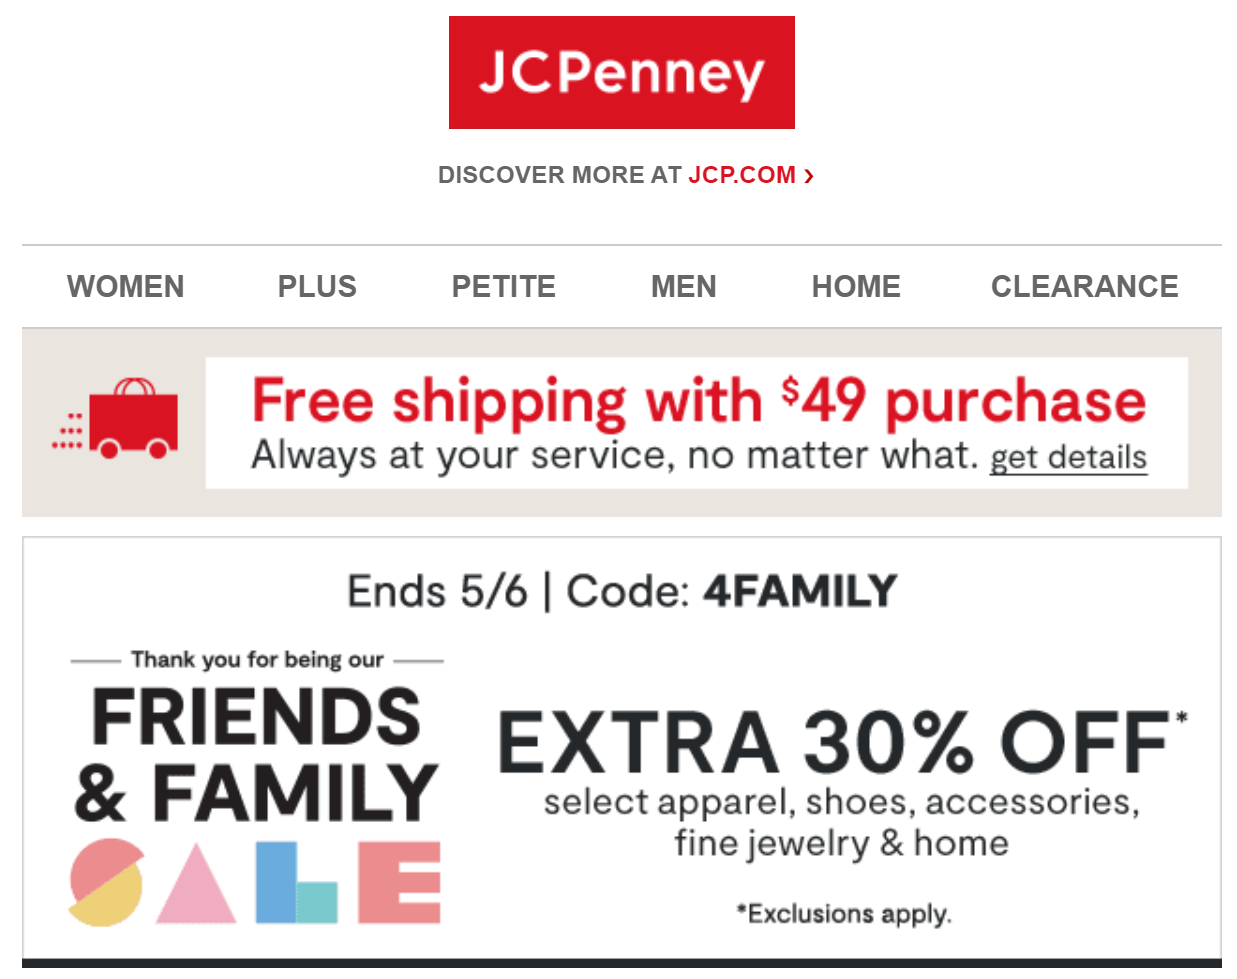 jcpenney deals email